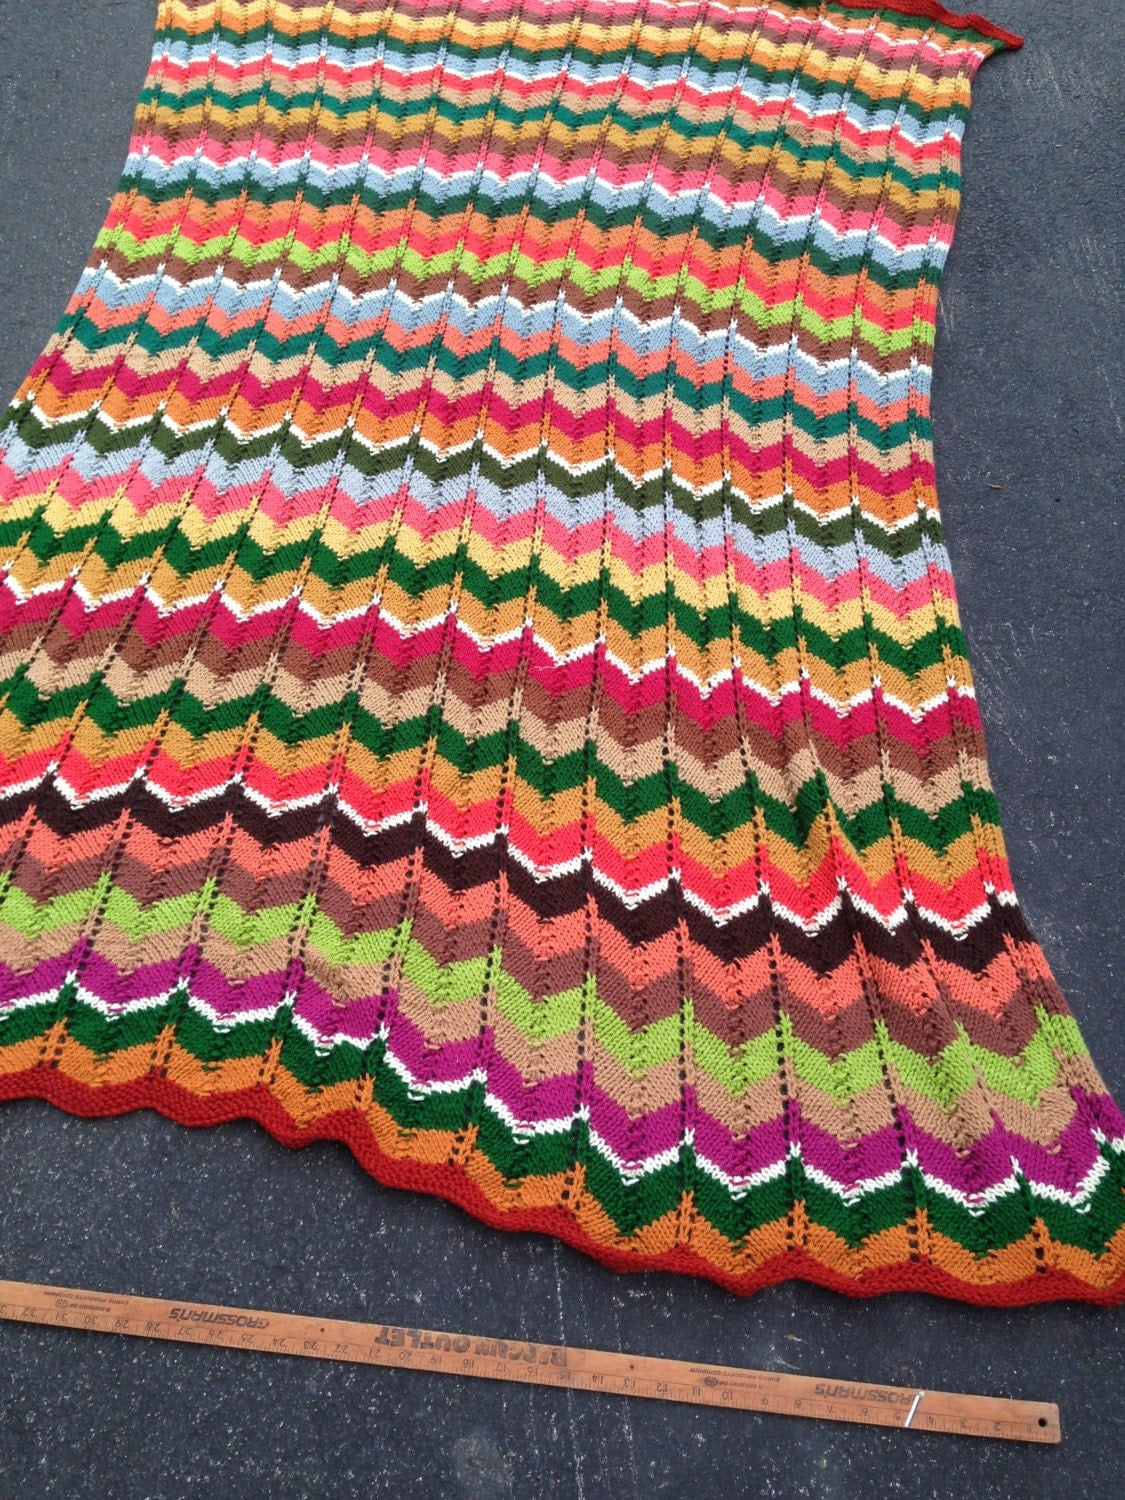 Knitted Chevron Afghan. 50x72. Soft Yarns. Multi-colored.